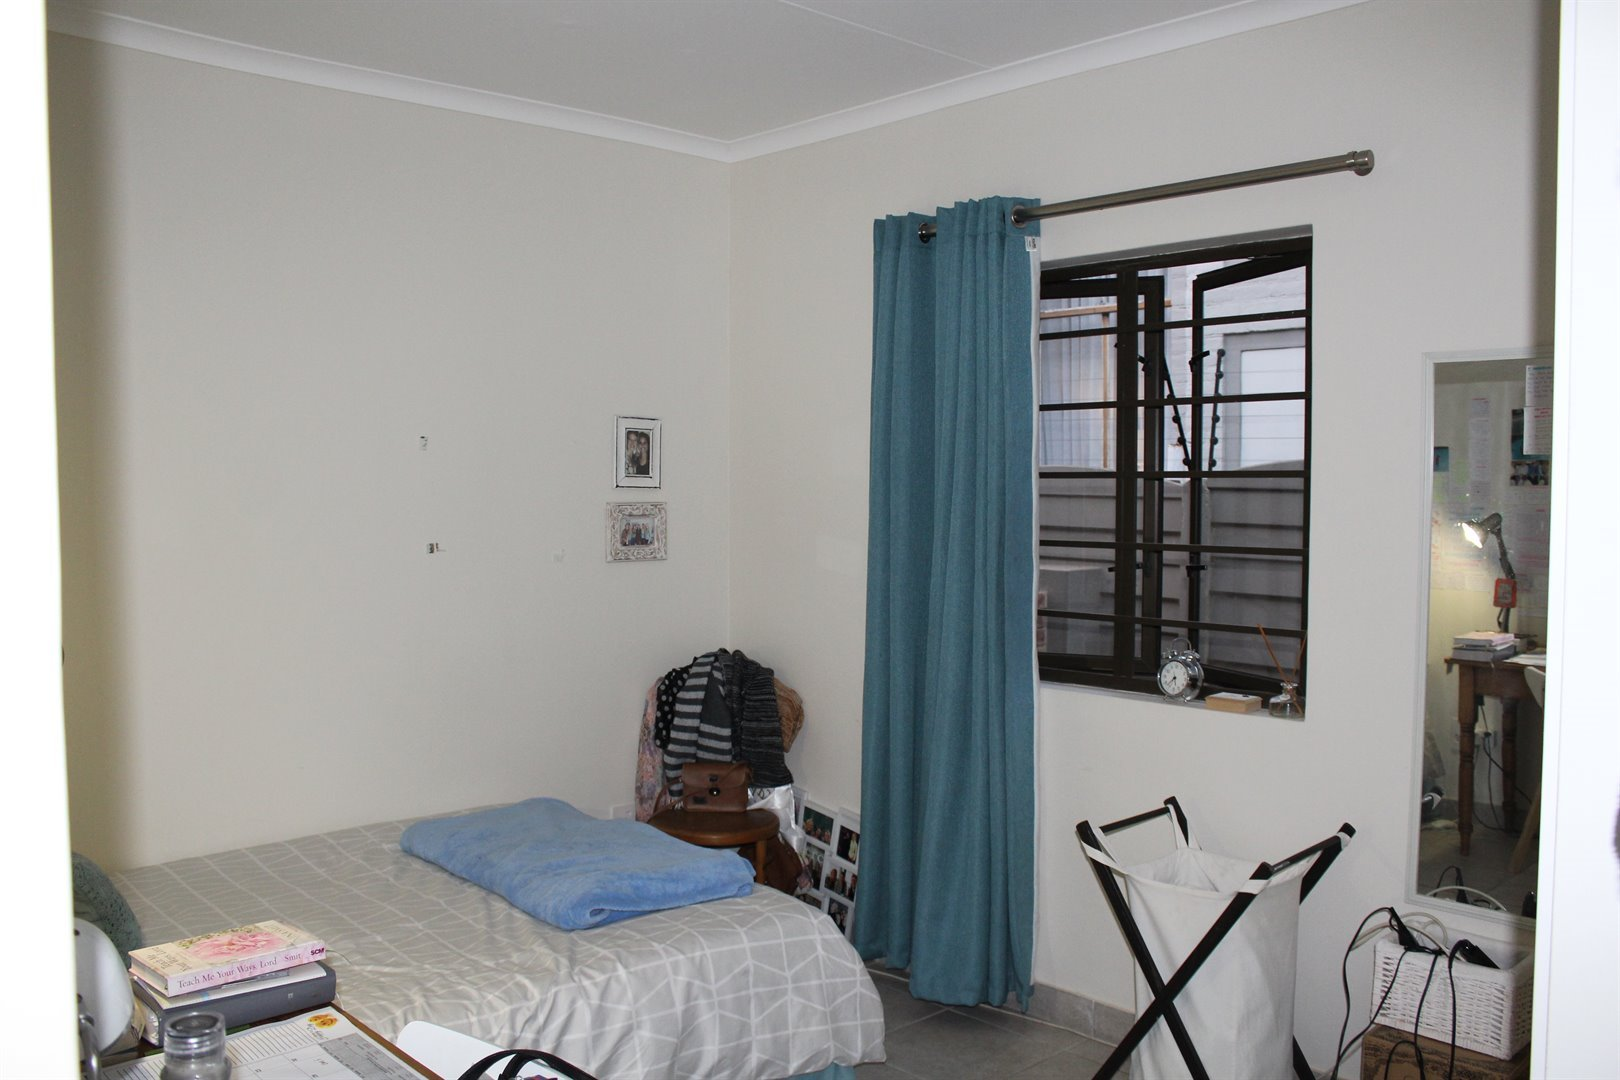 Potchefstroom Central property for sale. Ref No: 13531851. Picture no 4